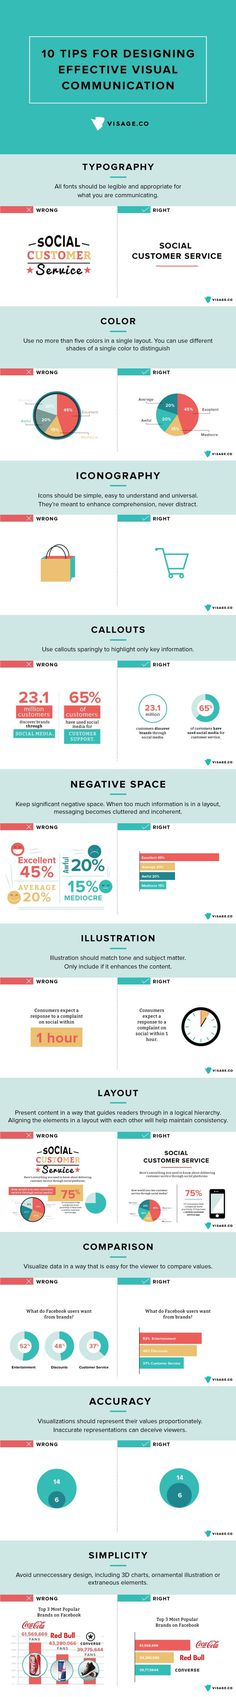 Your Guide To Designing Effective Visual Communication – infographic #infographics #designing #visual #communication